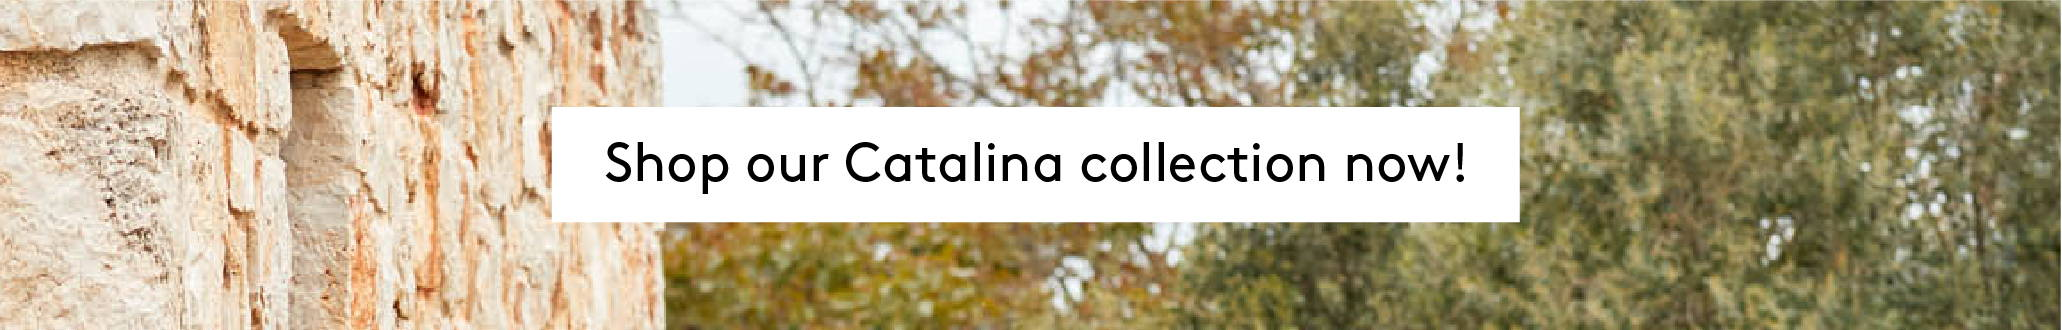 Shop our CATALINA collection now!